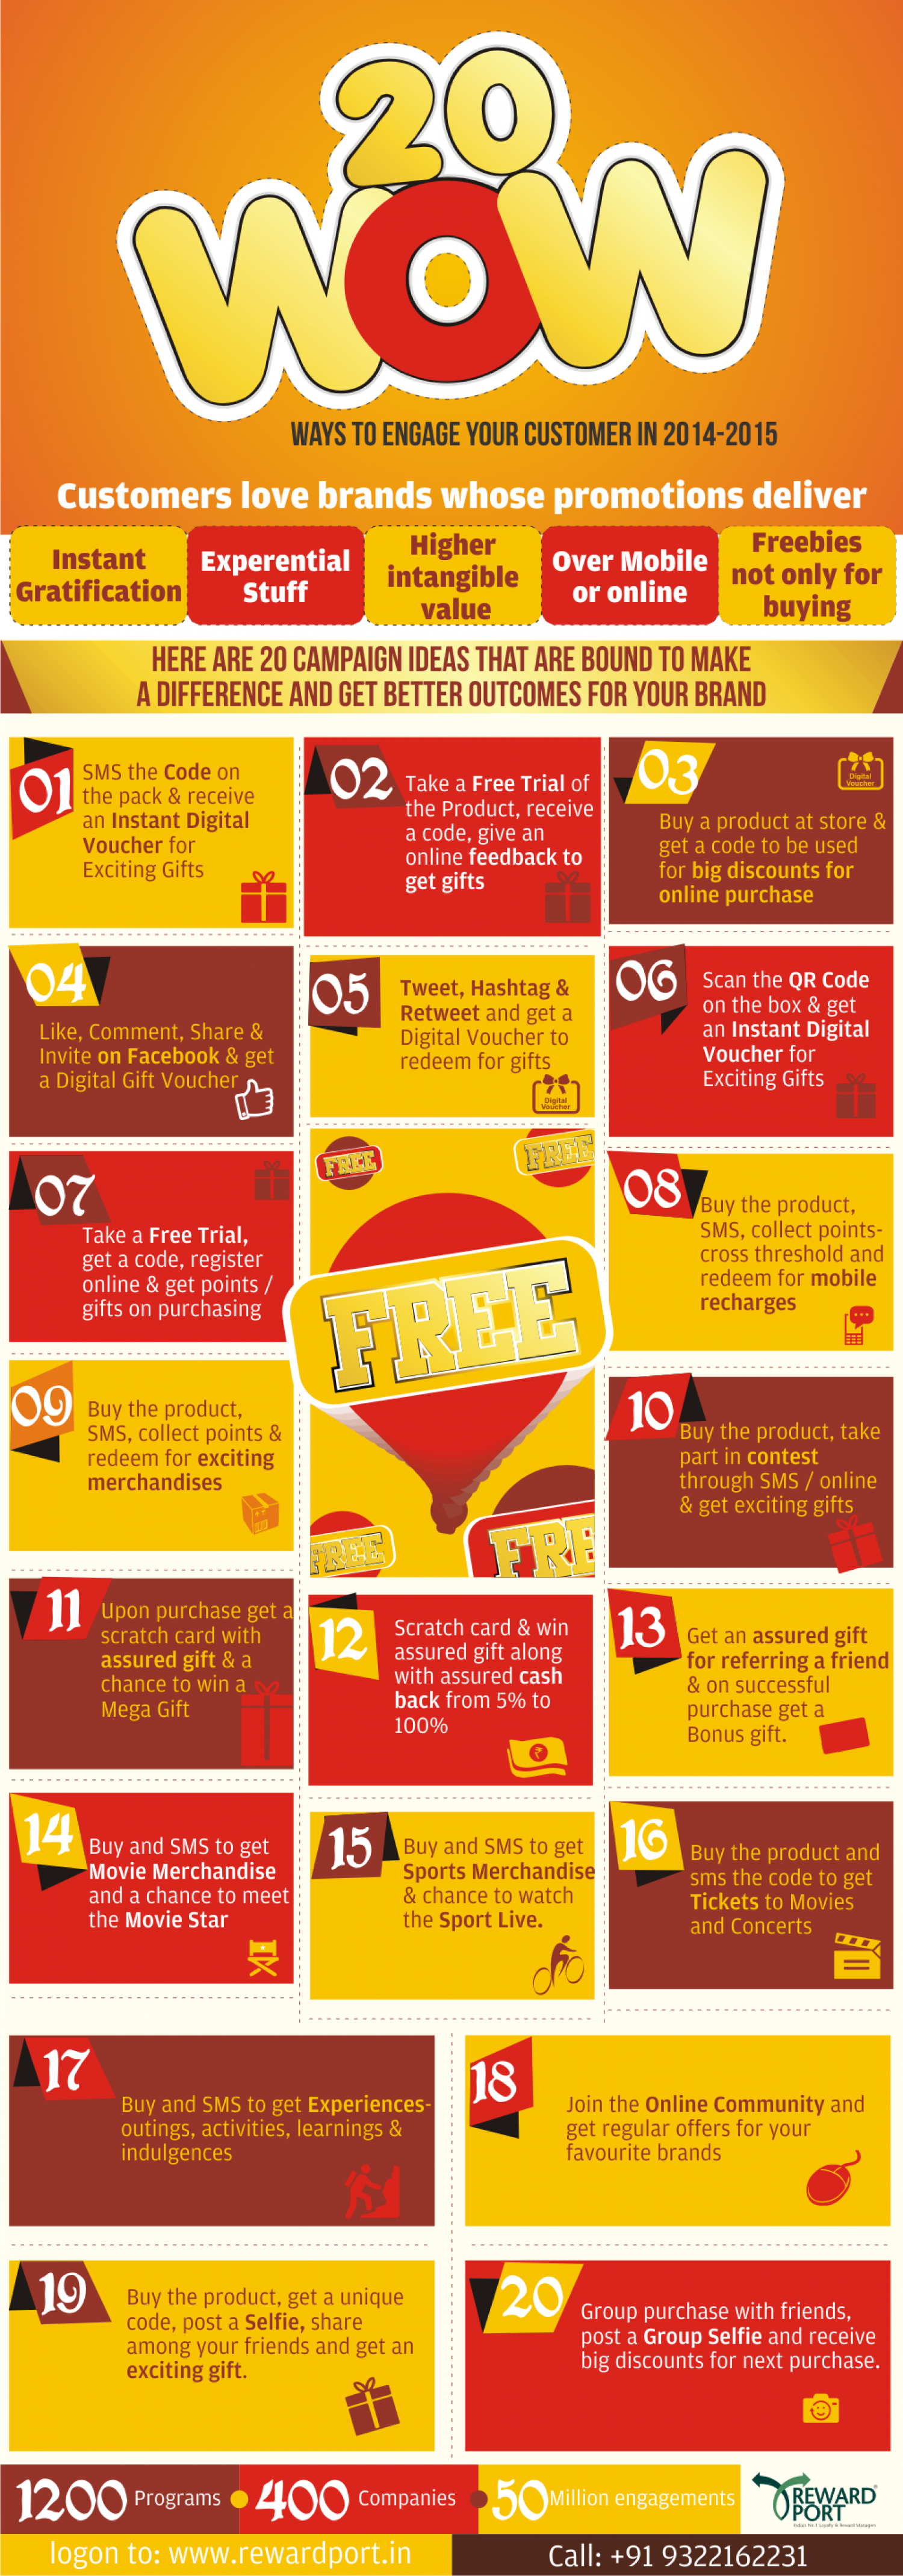 20 'WOW' Sales Promotions & Customer Engagement Ideas for 2014-15 Infographic